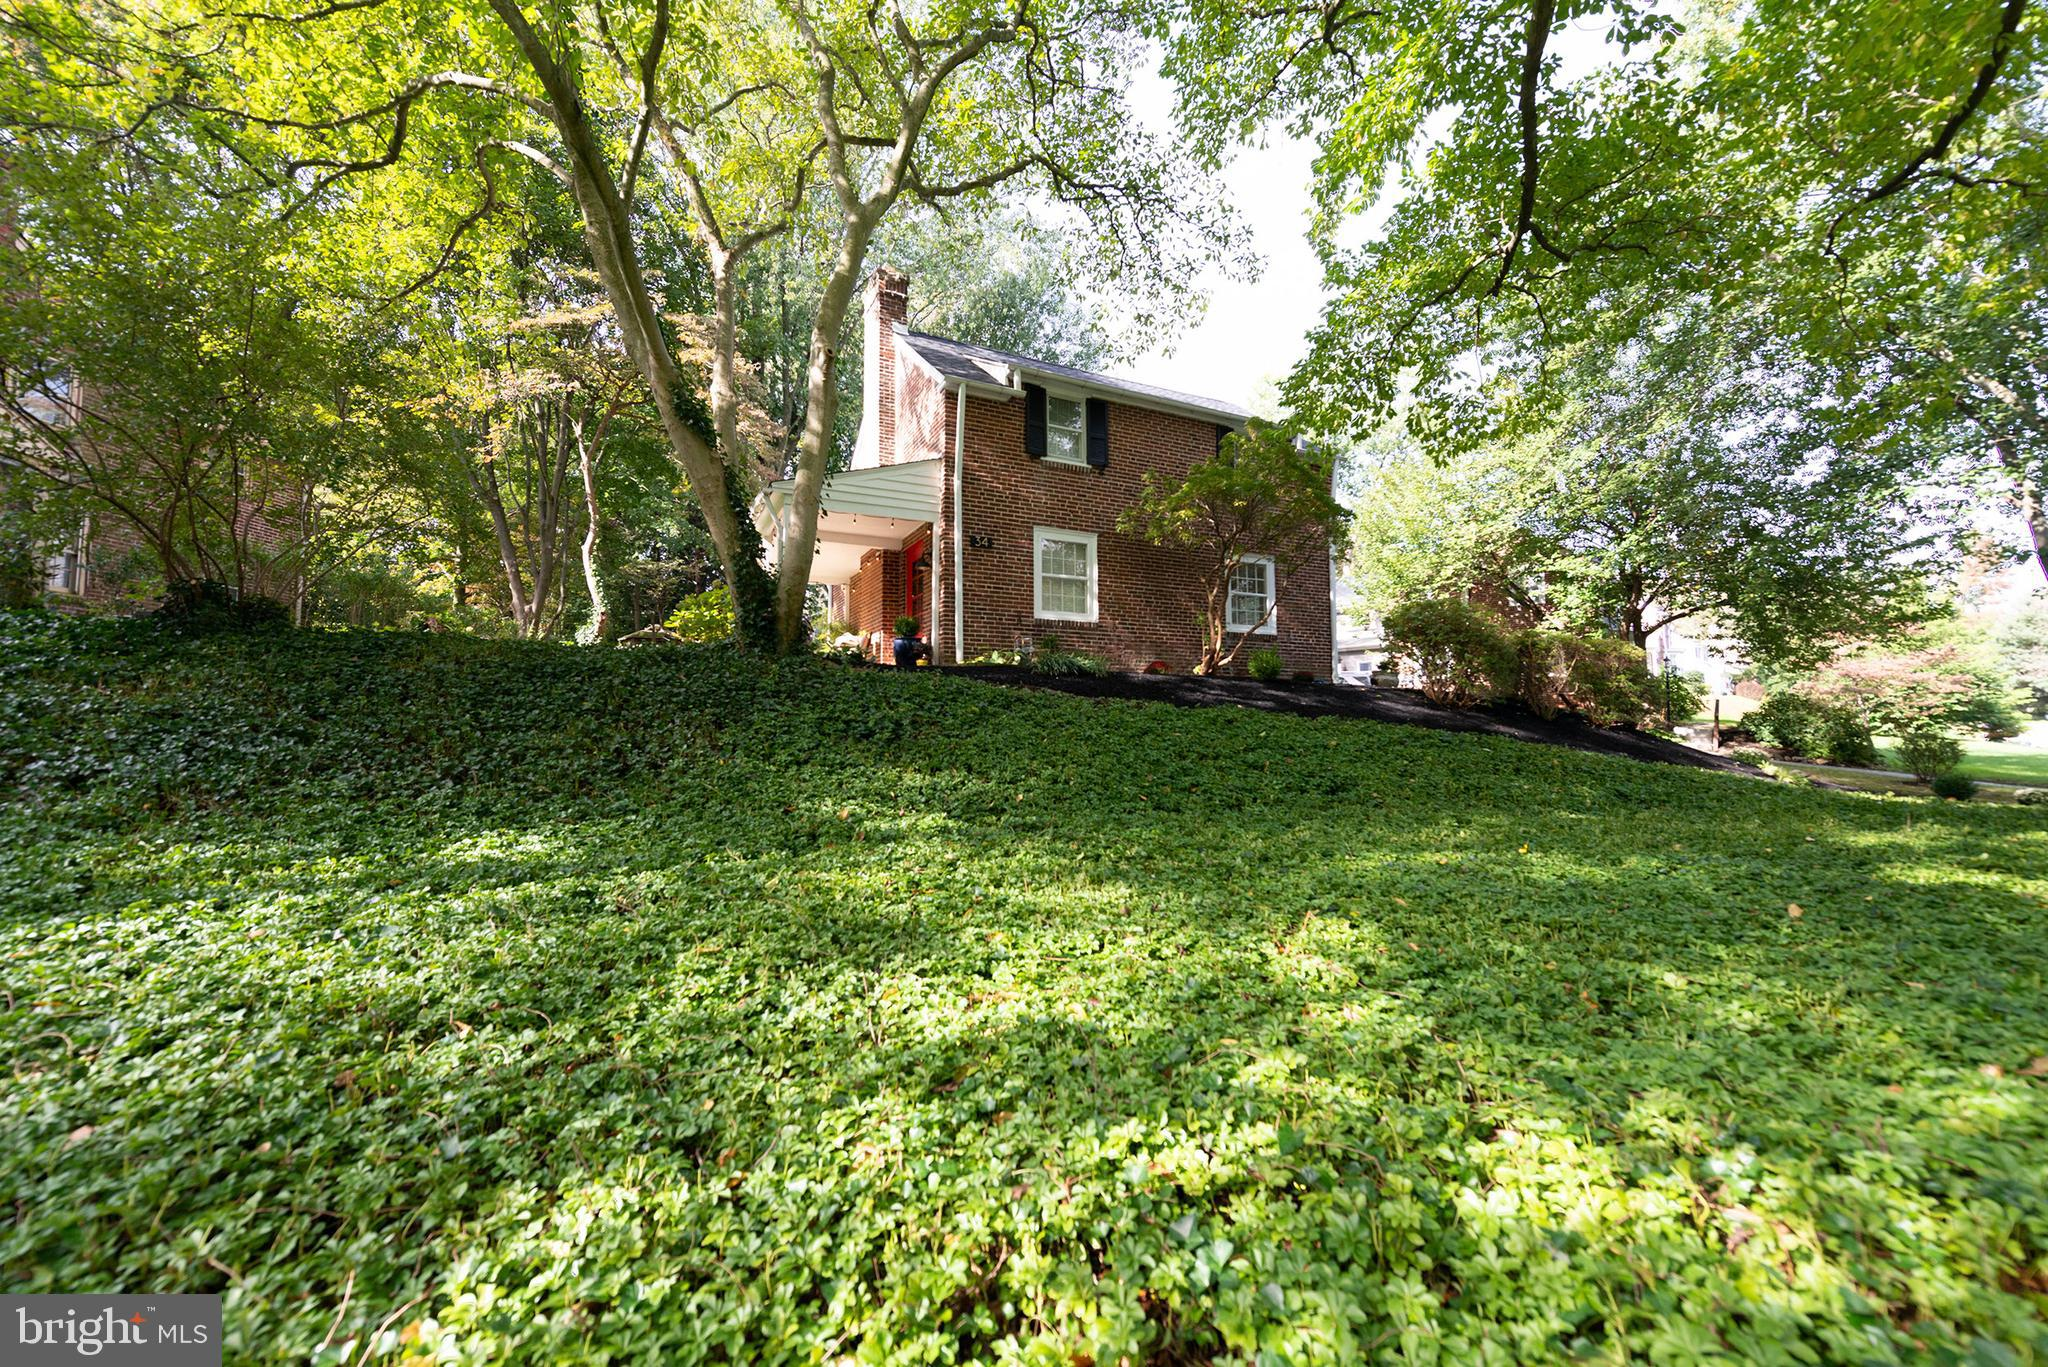 34 GREEN VALLEY ROAD, WALLINGFORD, PA 19086